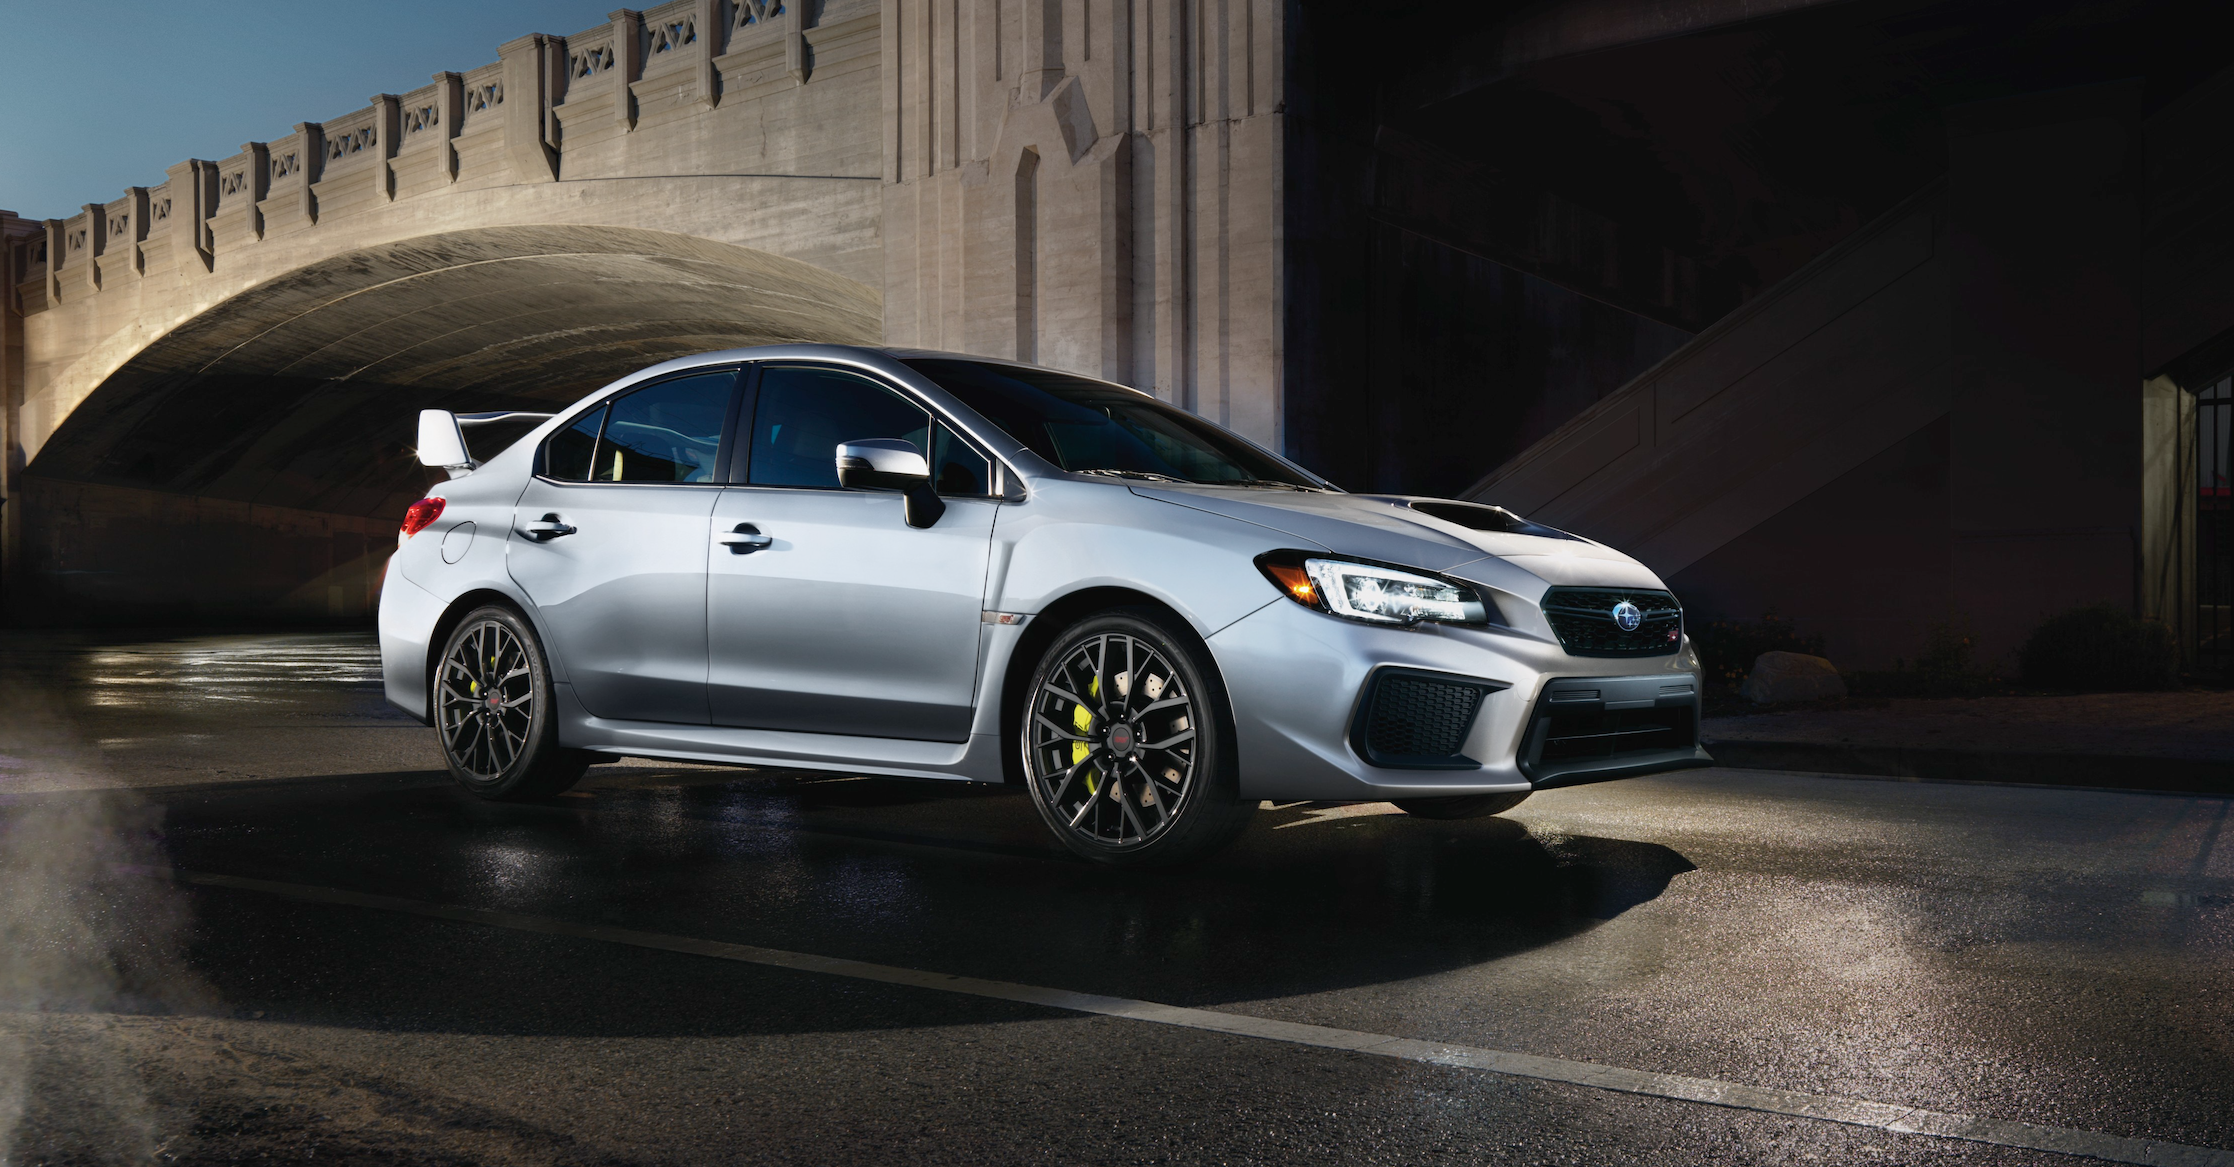 29 Gallery of 2019 Subaru Sti Ra Configurations with 2019 Subaru Sti Ra